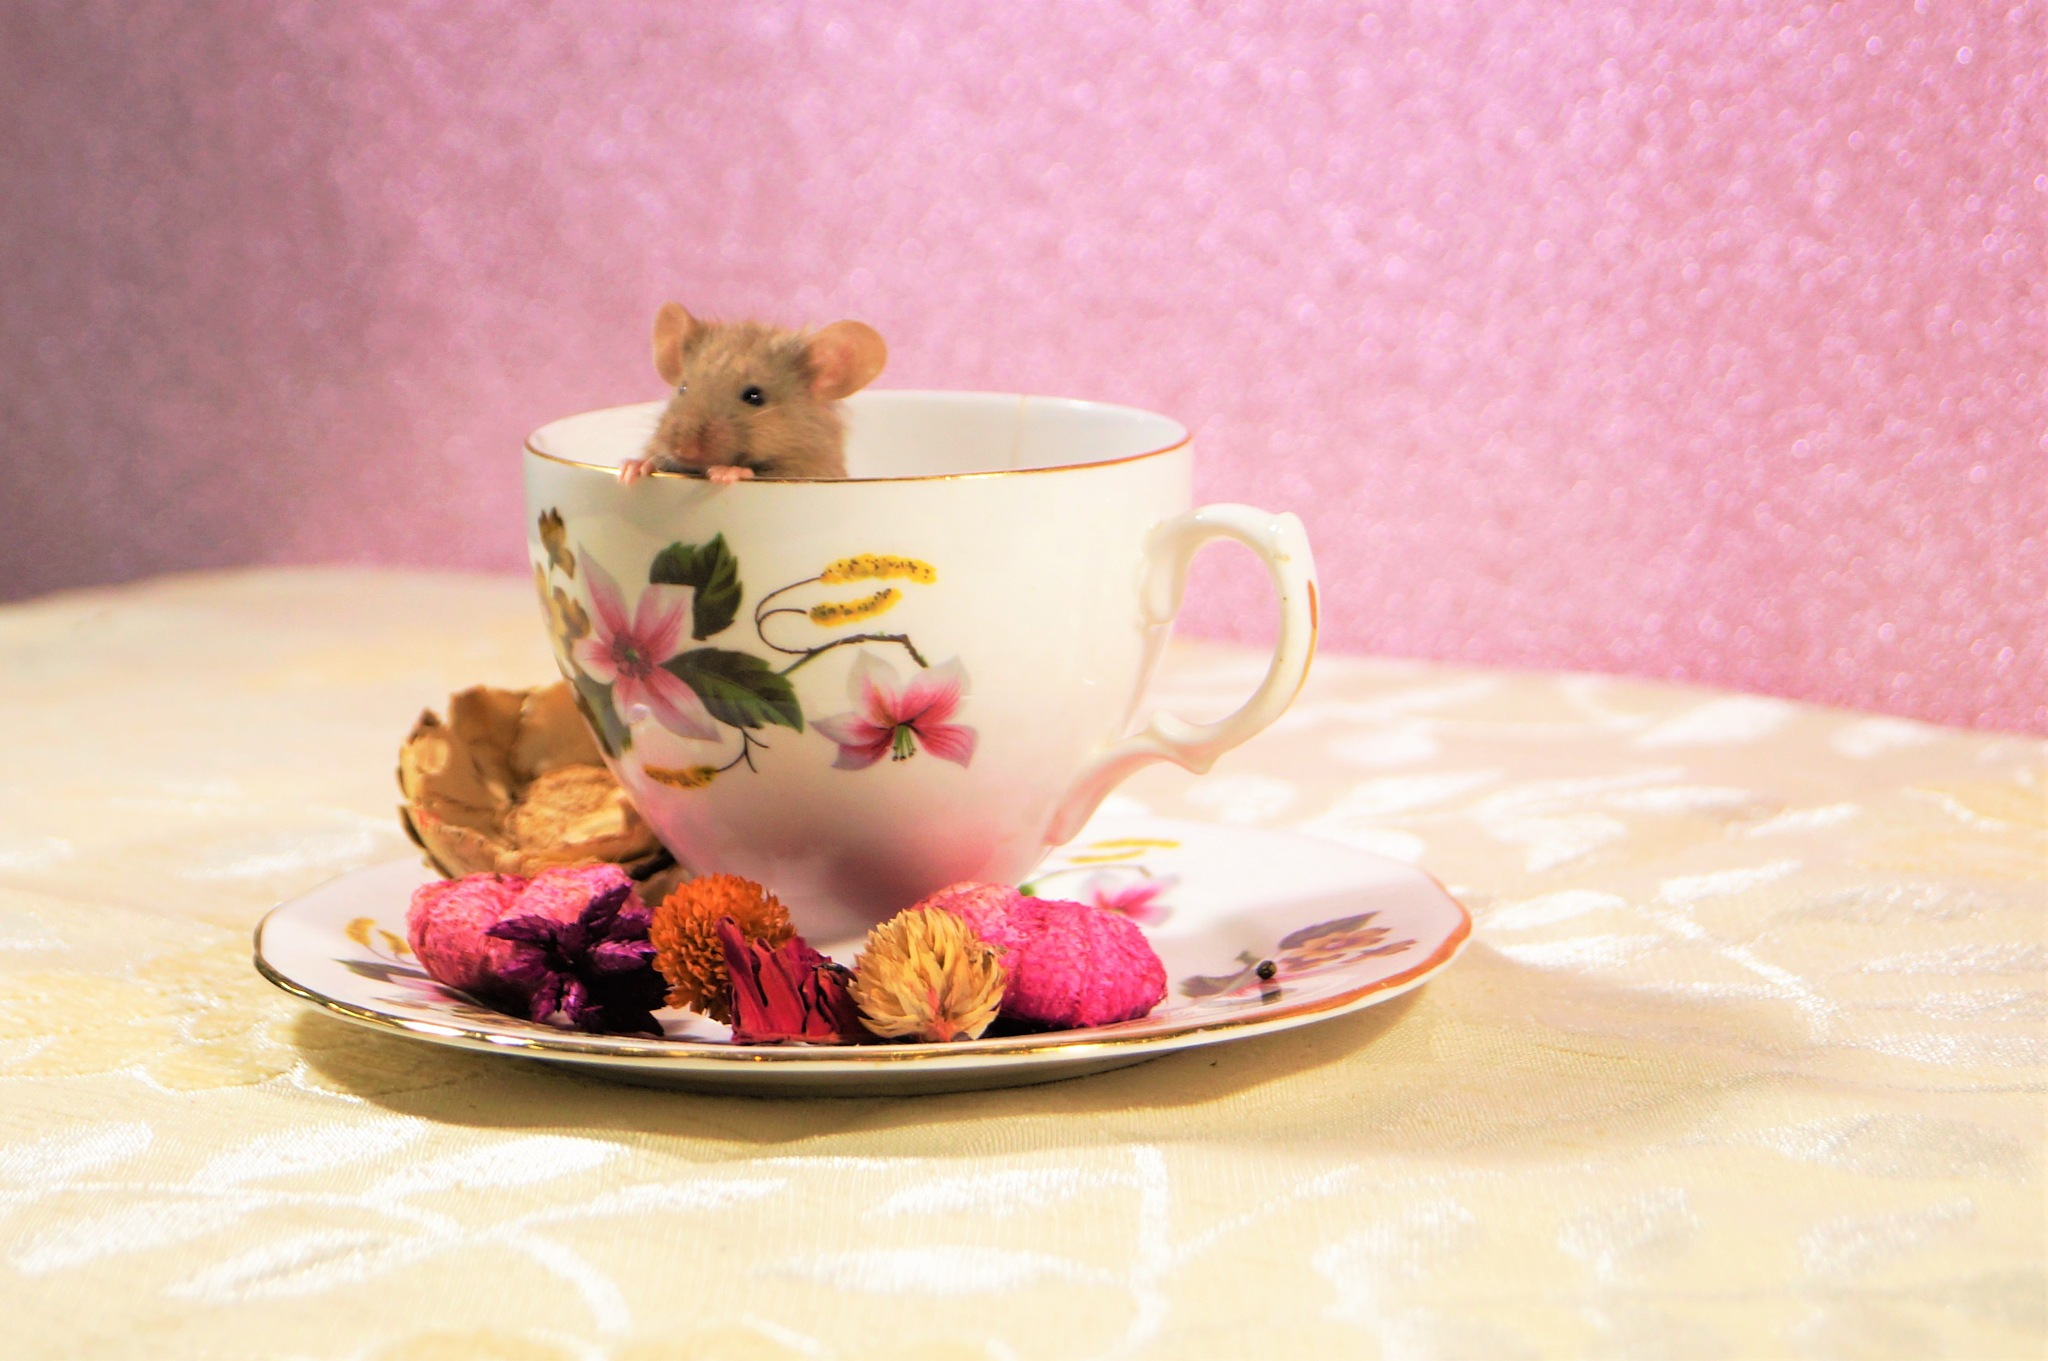 Mouse tea party by Blue Beard